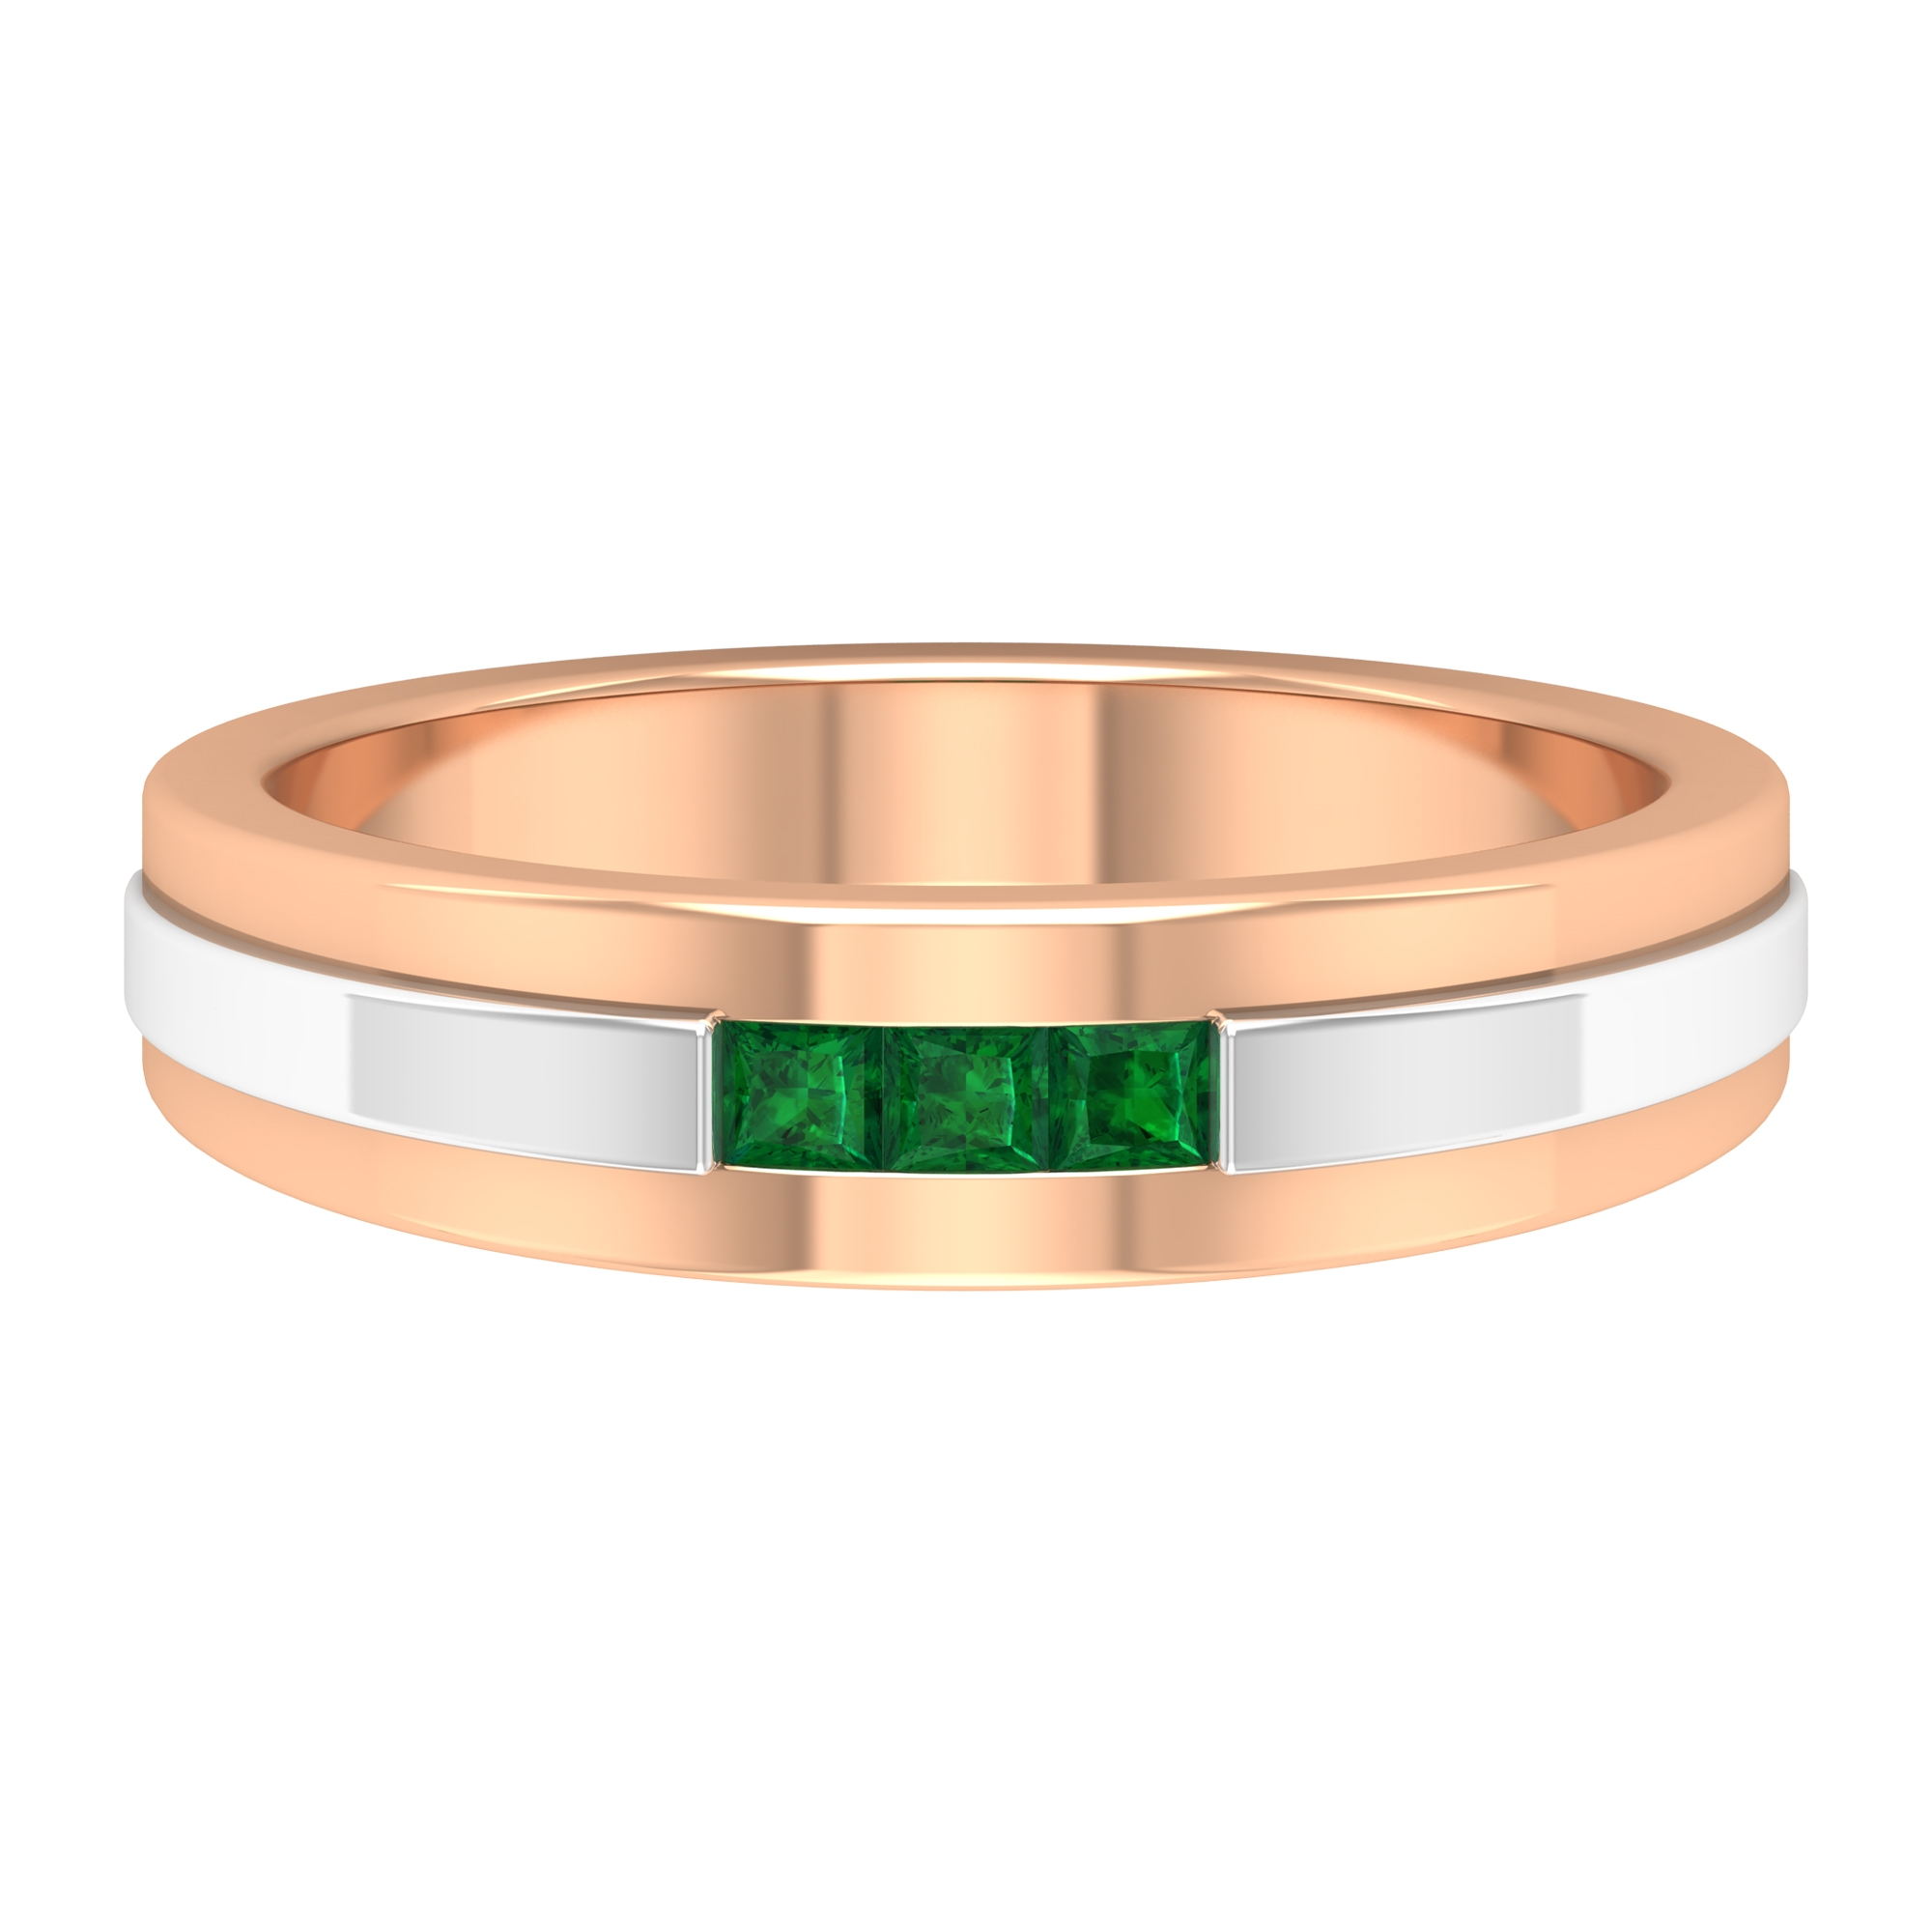 Two Tone Gold Unisex Band Ring with Channel Set Princess Cut Emeralds